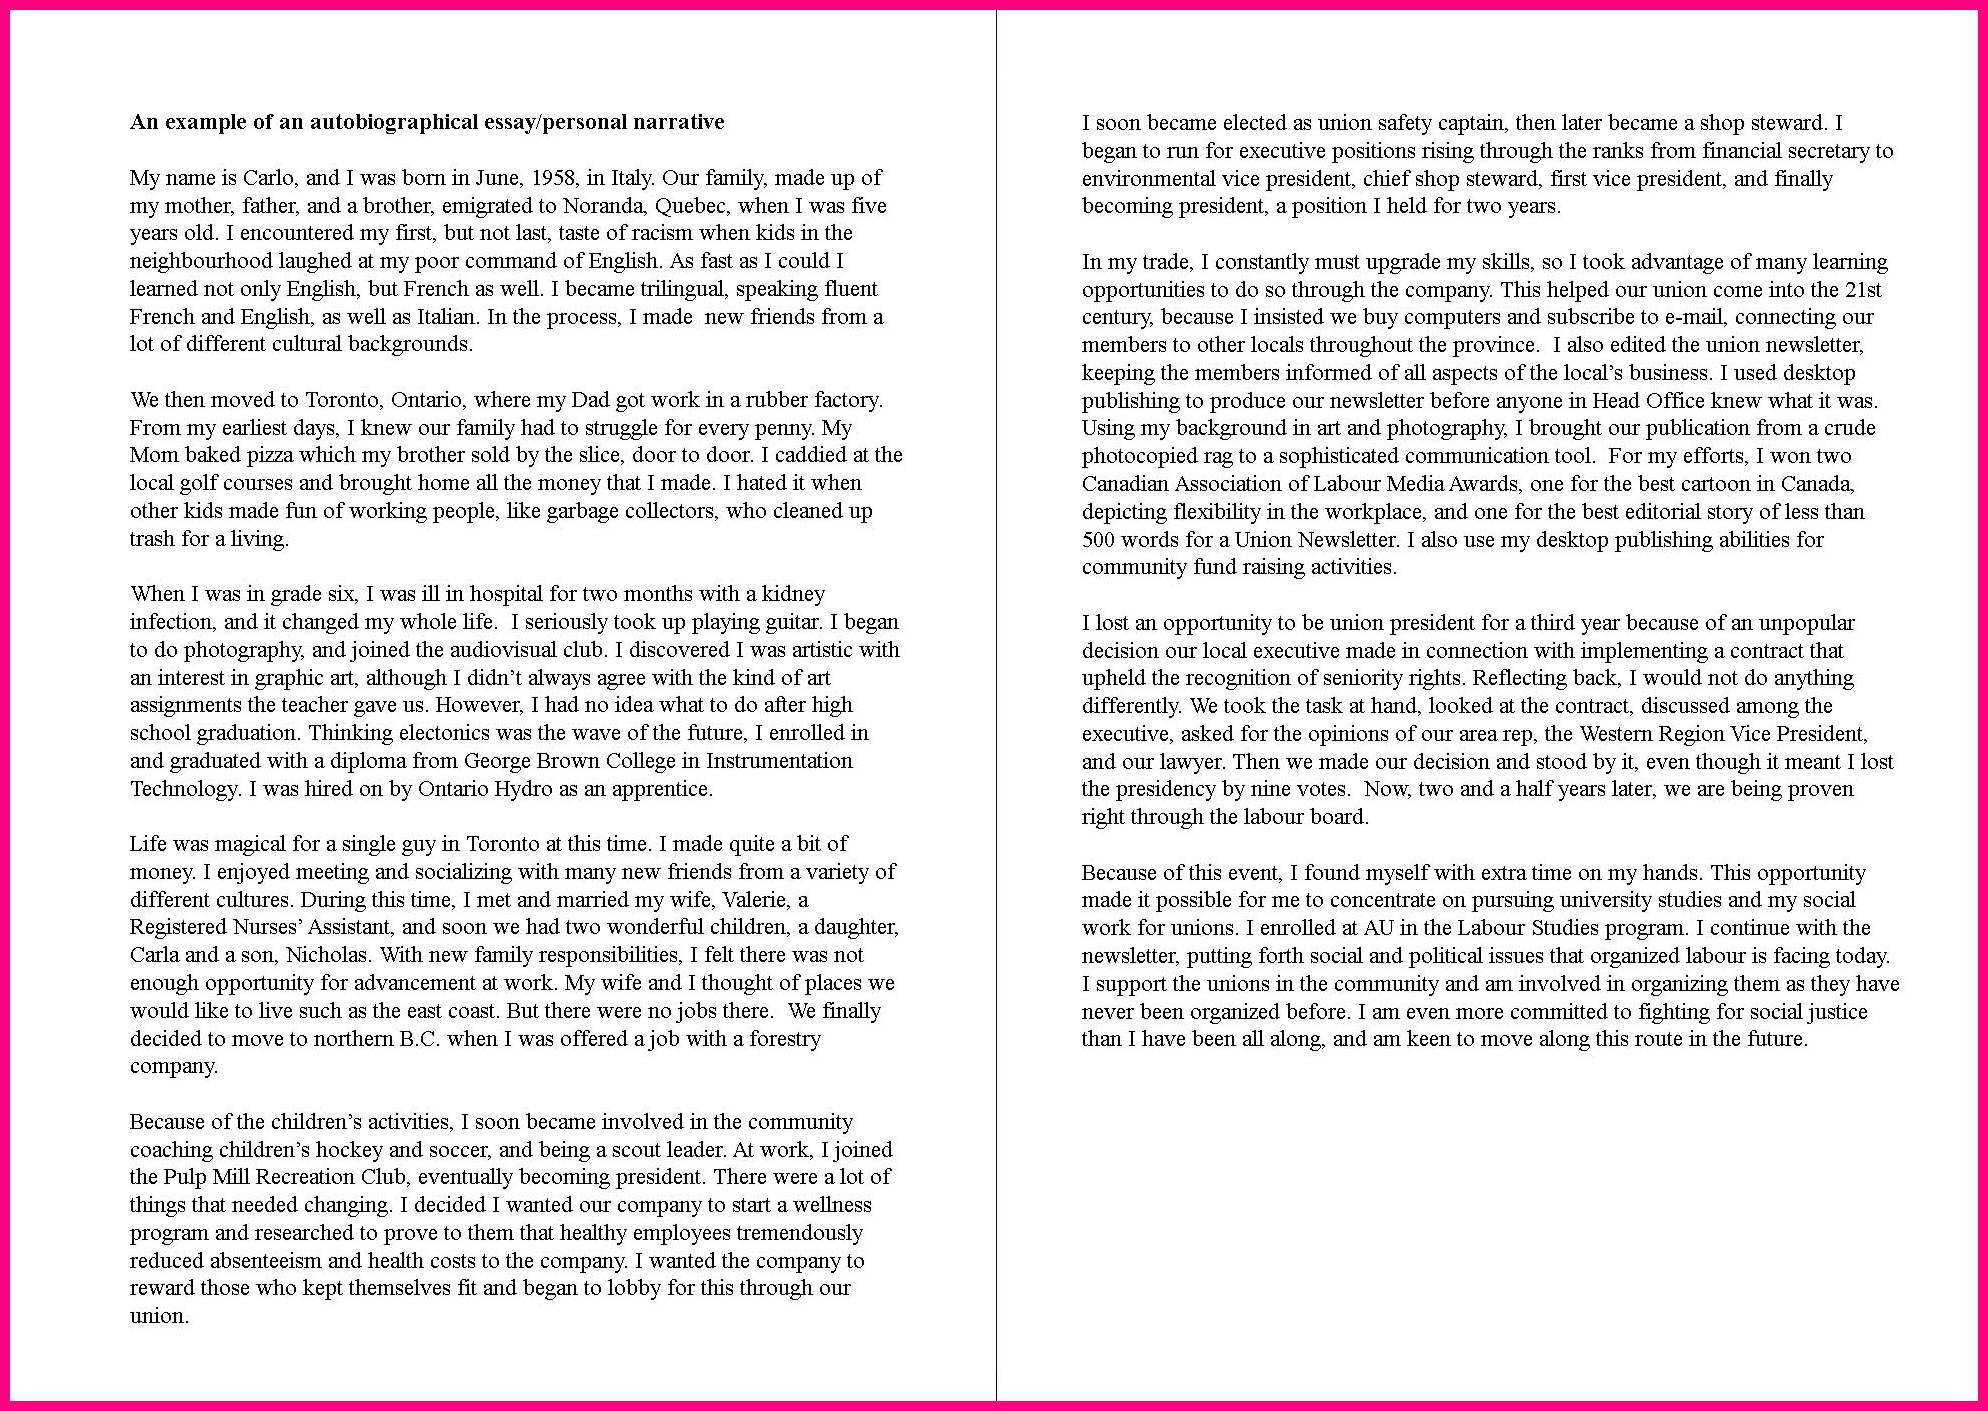 005 Autobiography Essay Example Family Background Sample Autobiographical Unique Pdf Examples For College Full